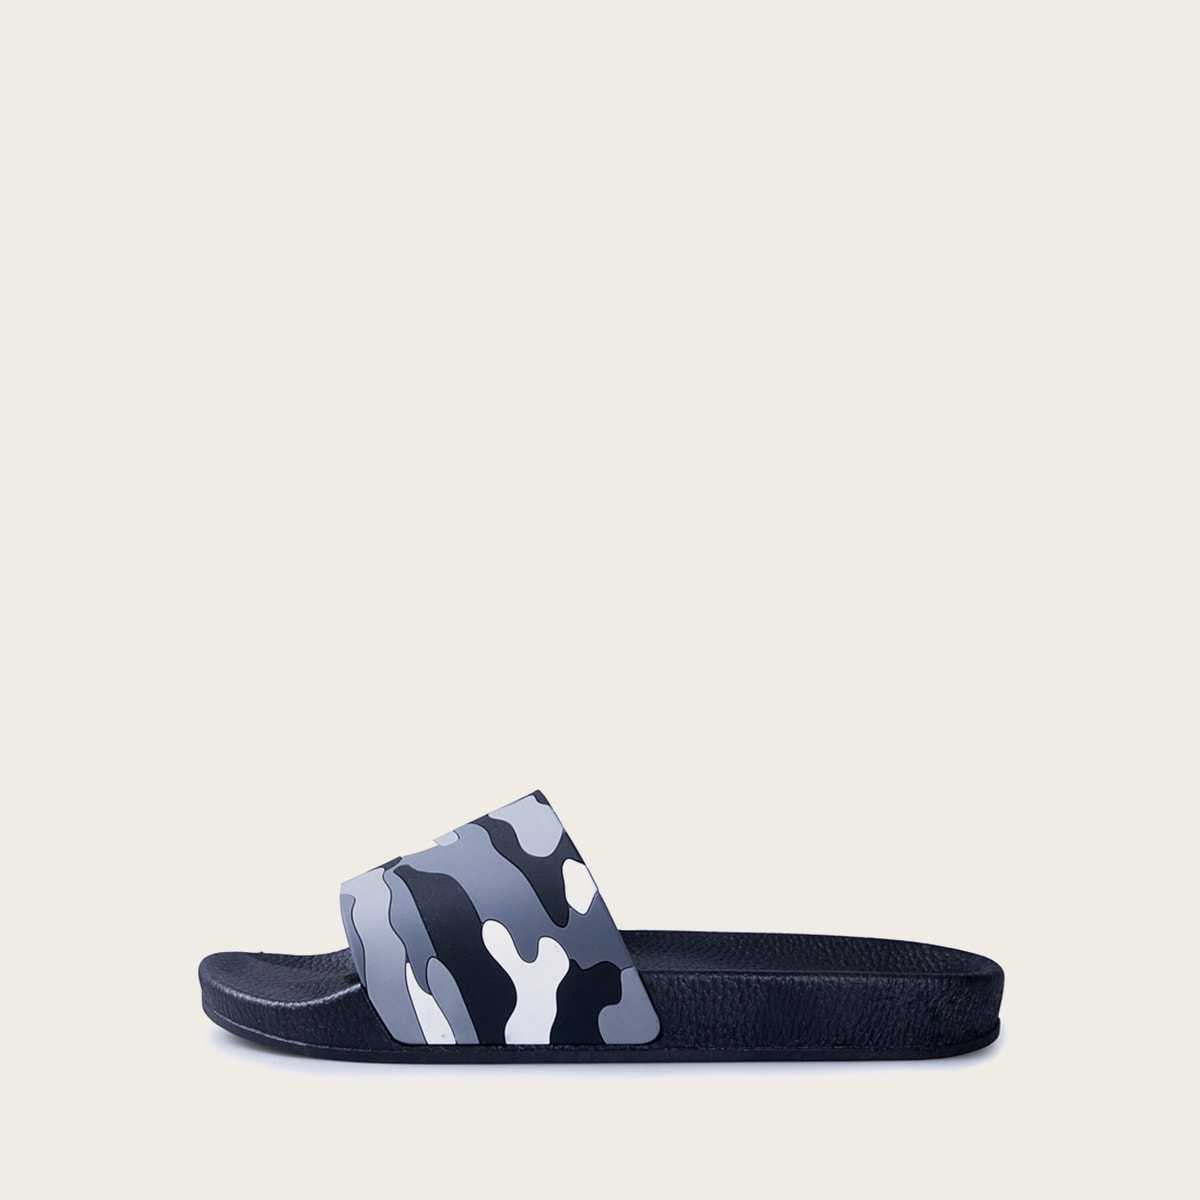 Guys Camouflage Print Open Toe Sliders in Grey by ROMWE on GOOFASH